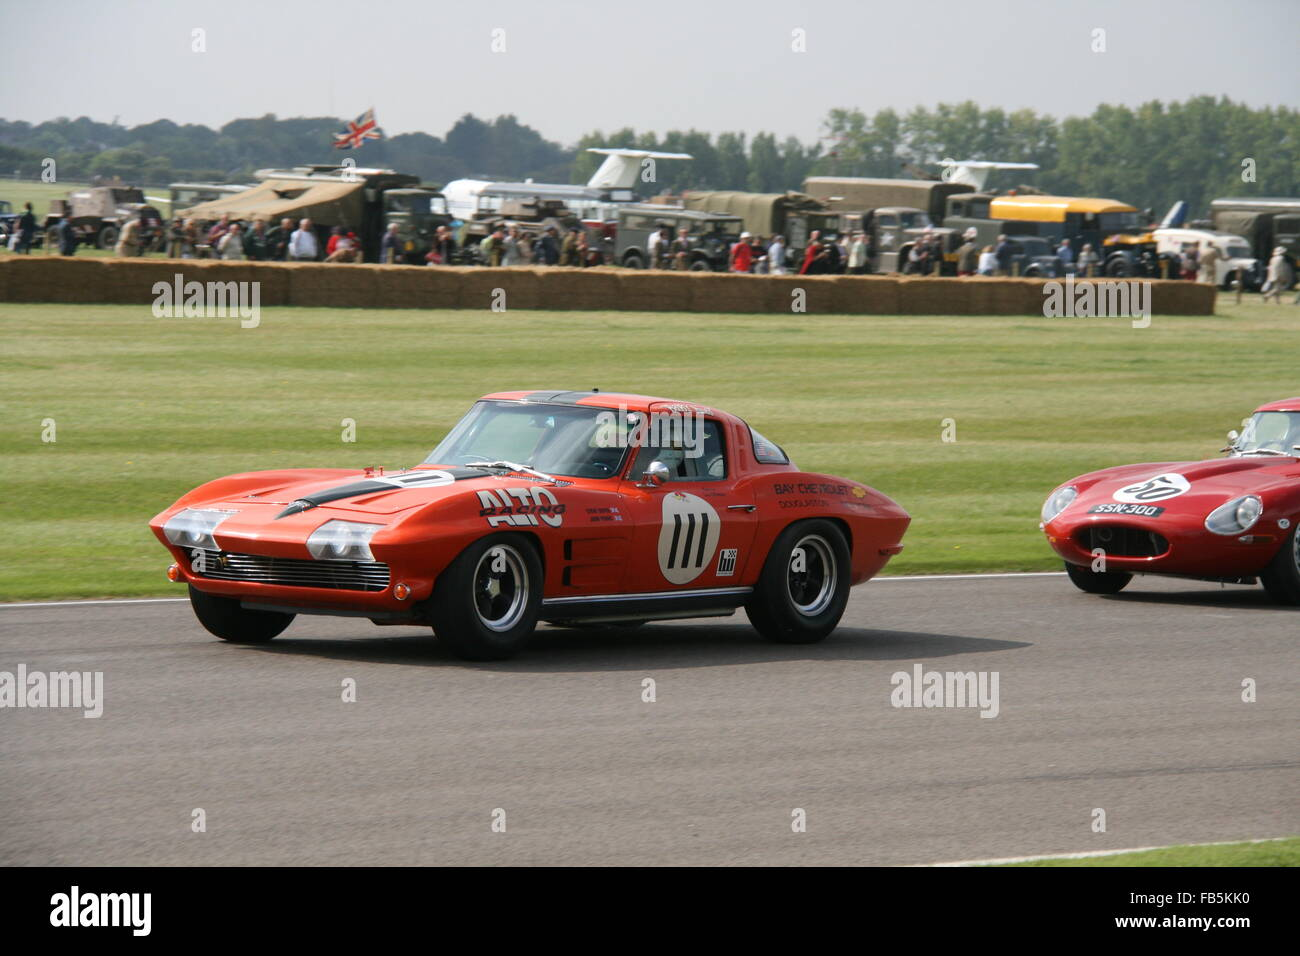 TWO RED CLASSIC RACING CARS AT GOODWOOD REVIVAL IN UK Stock Photo